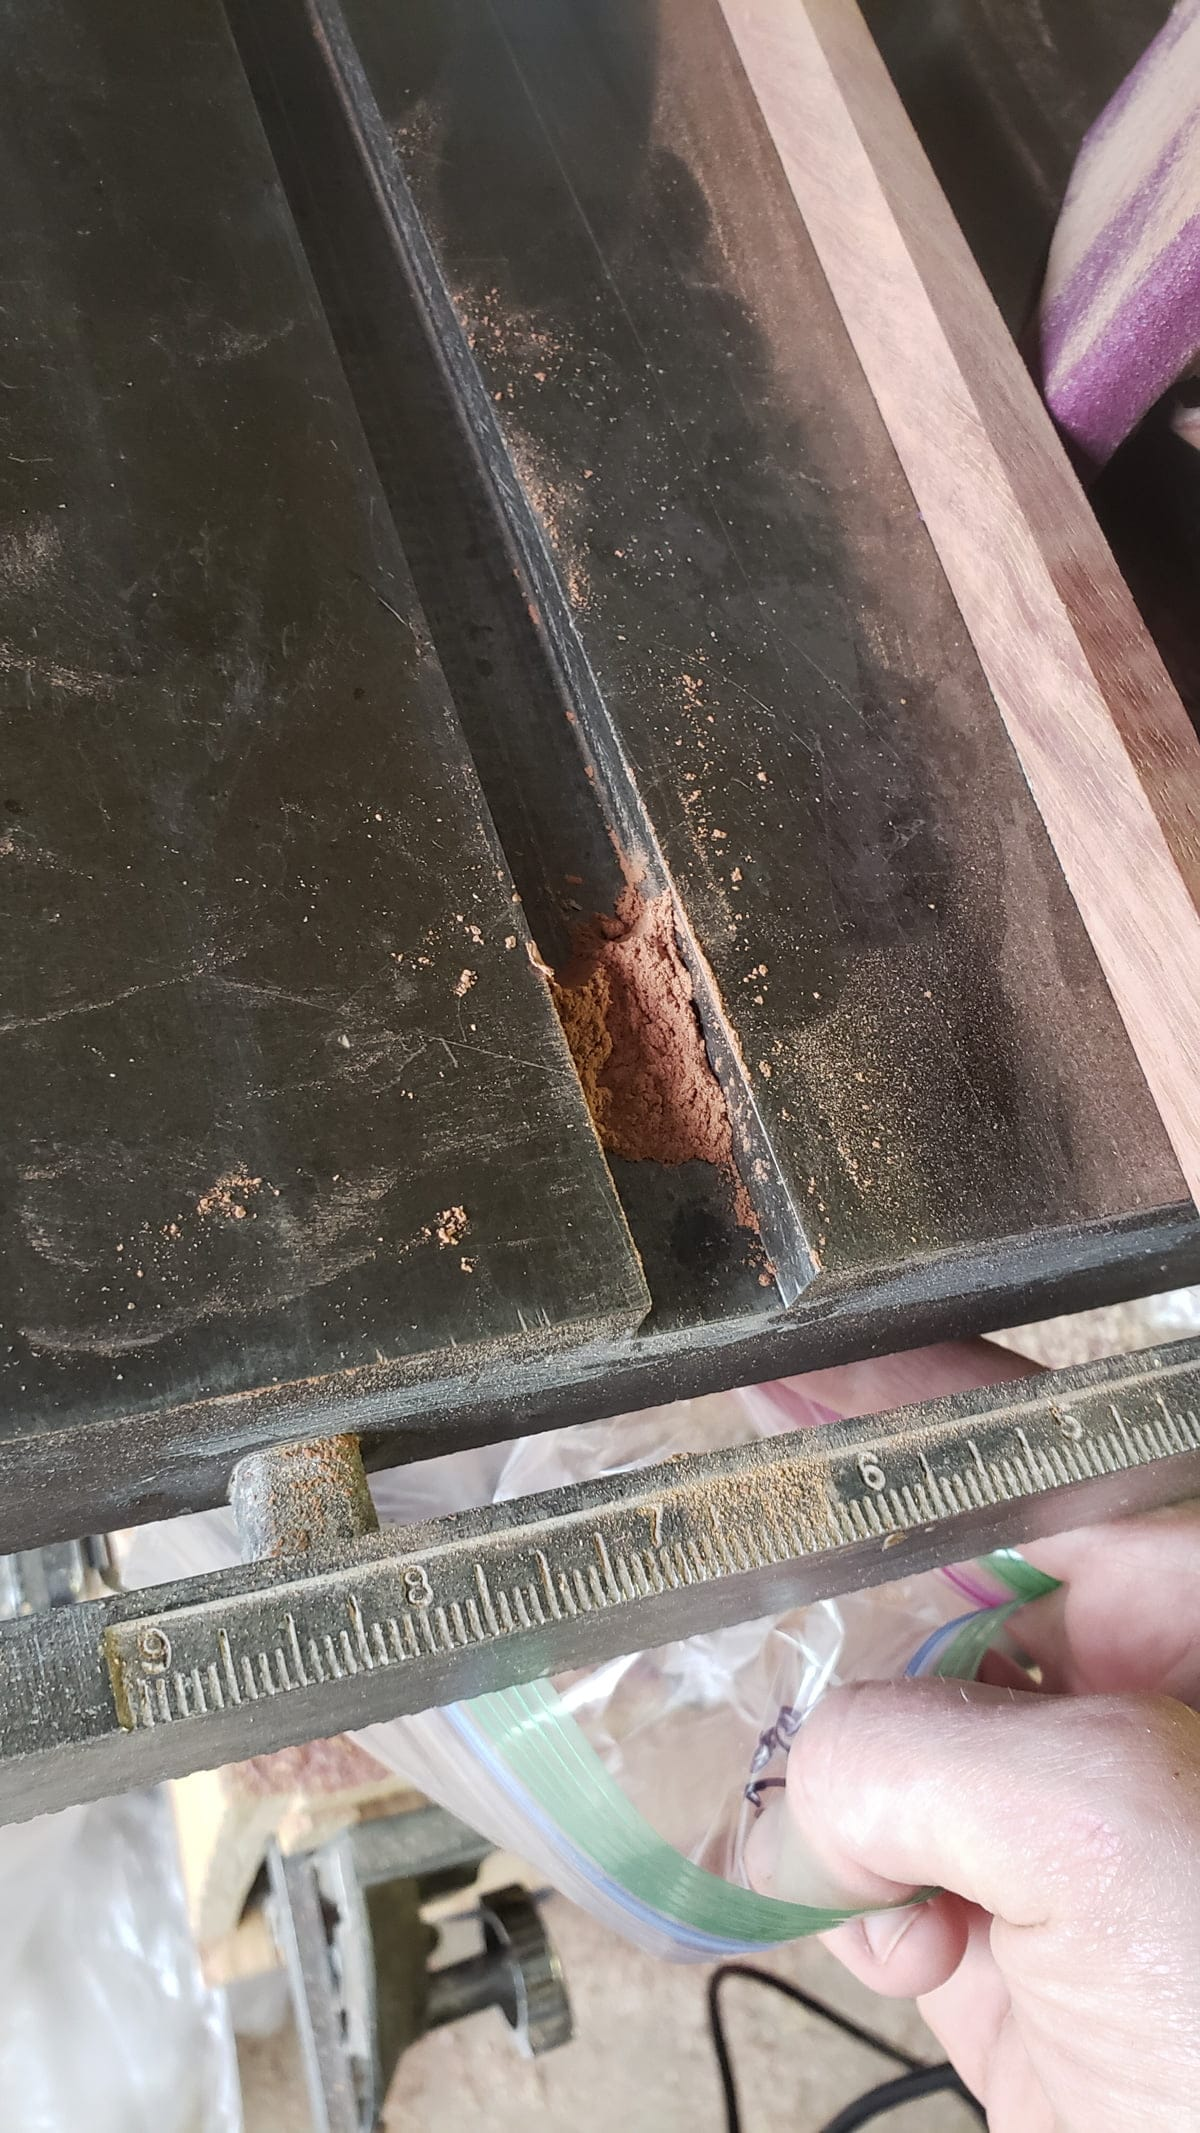 A metal table saw work surface is seen, with a slot. Some wood dust is gathered into the slot.